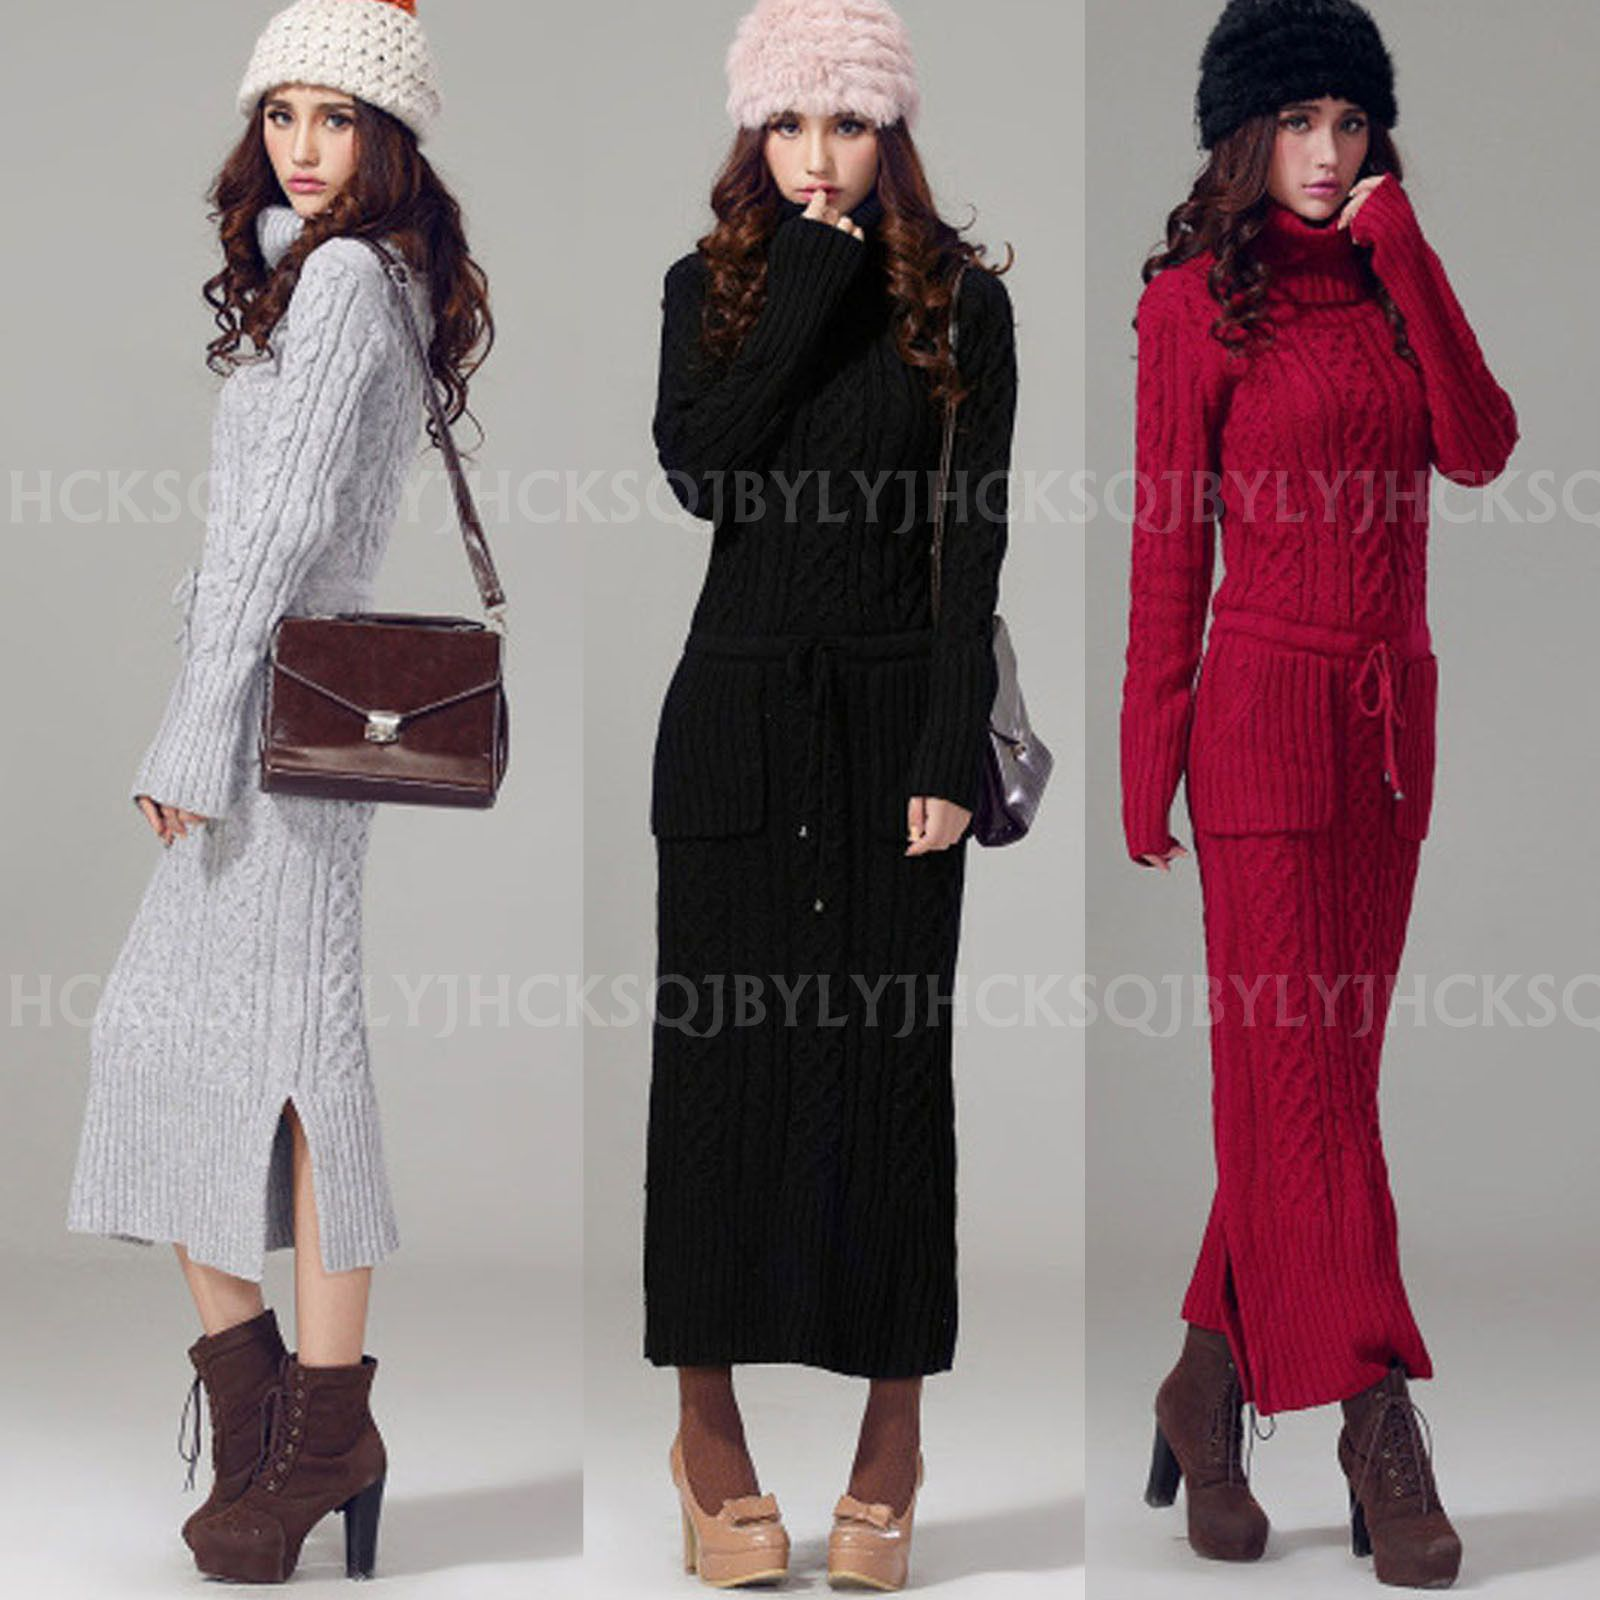 24432cba39a Winter Warm Women Turtleneck Chunky Knit Wool Blend Pullover Maxi Sweater  Dress